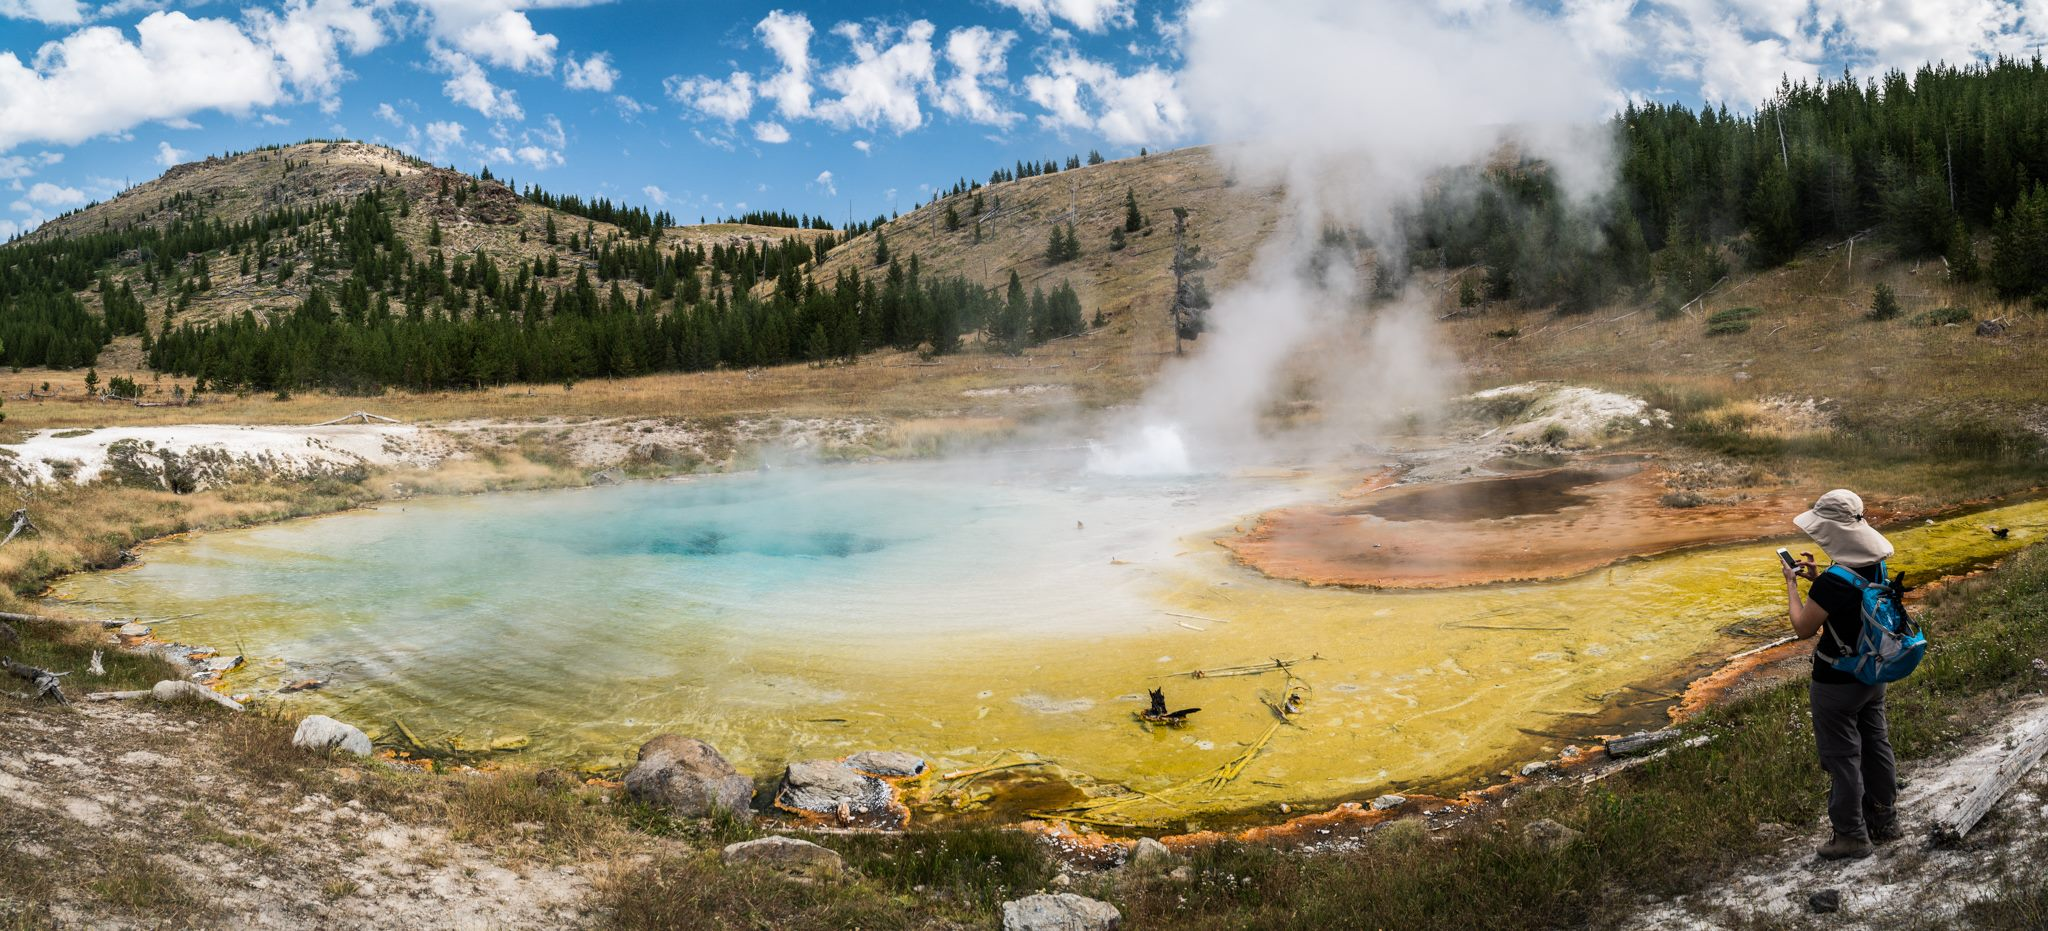 An inspiring story from a Yellowstone geyser